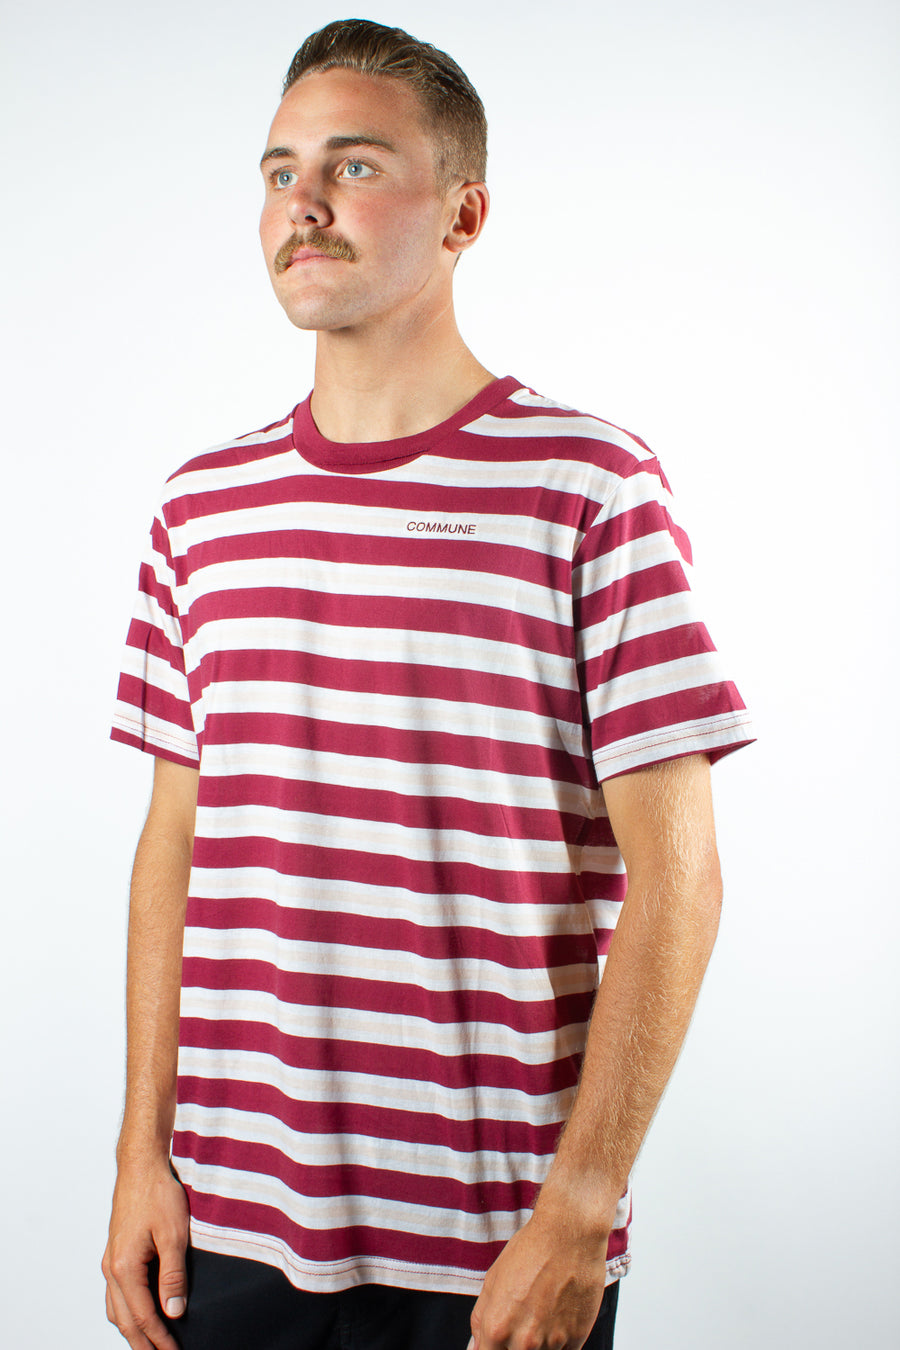 Polymer X Commune Capital Horizontal Stripe Tee Burgundy